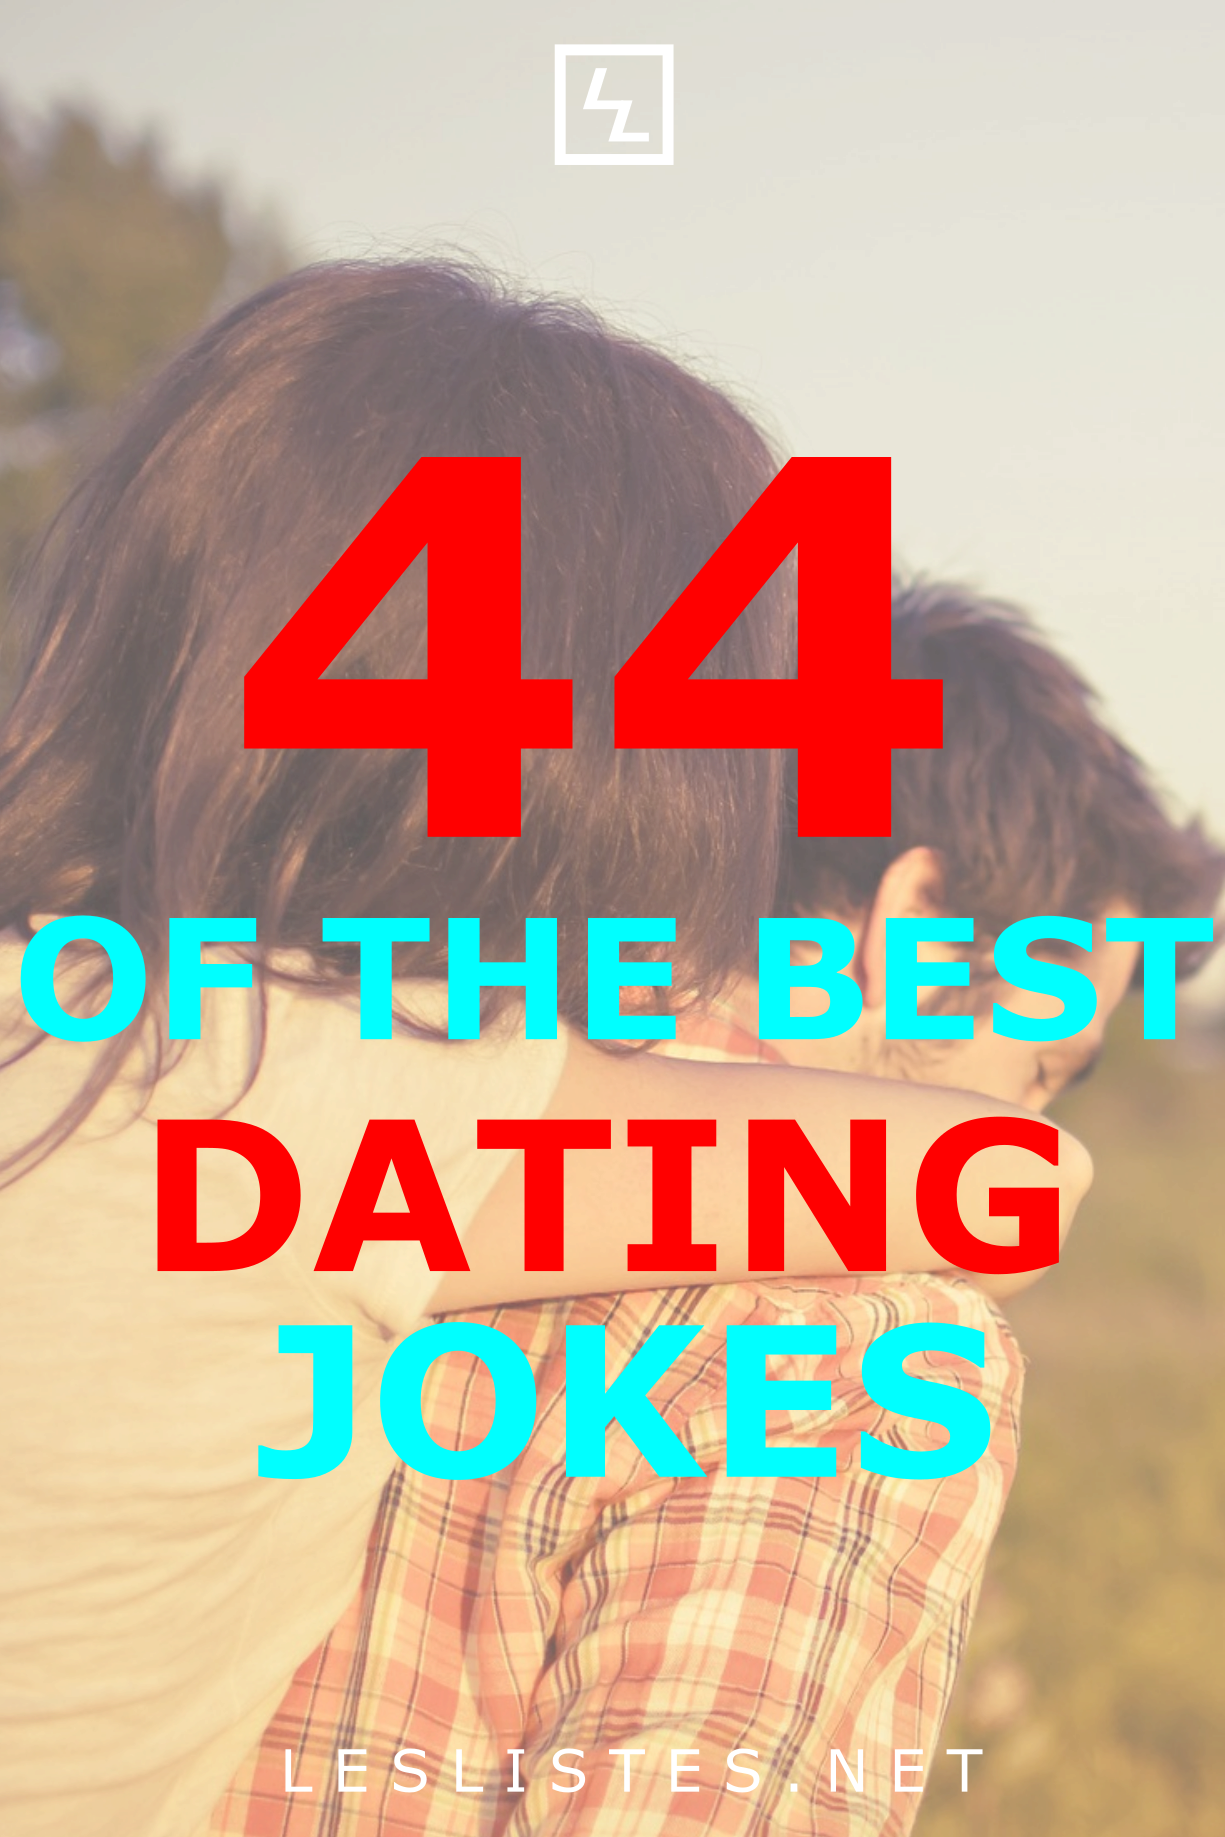 Best dating one liners